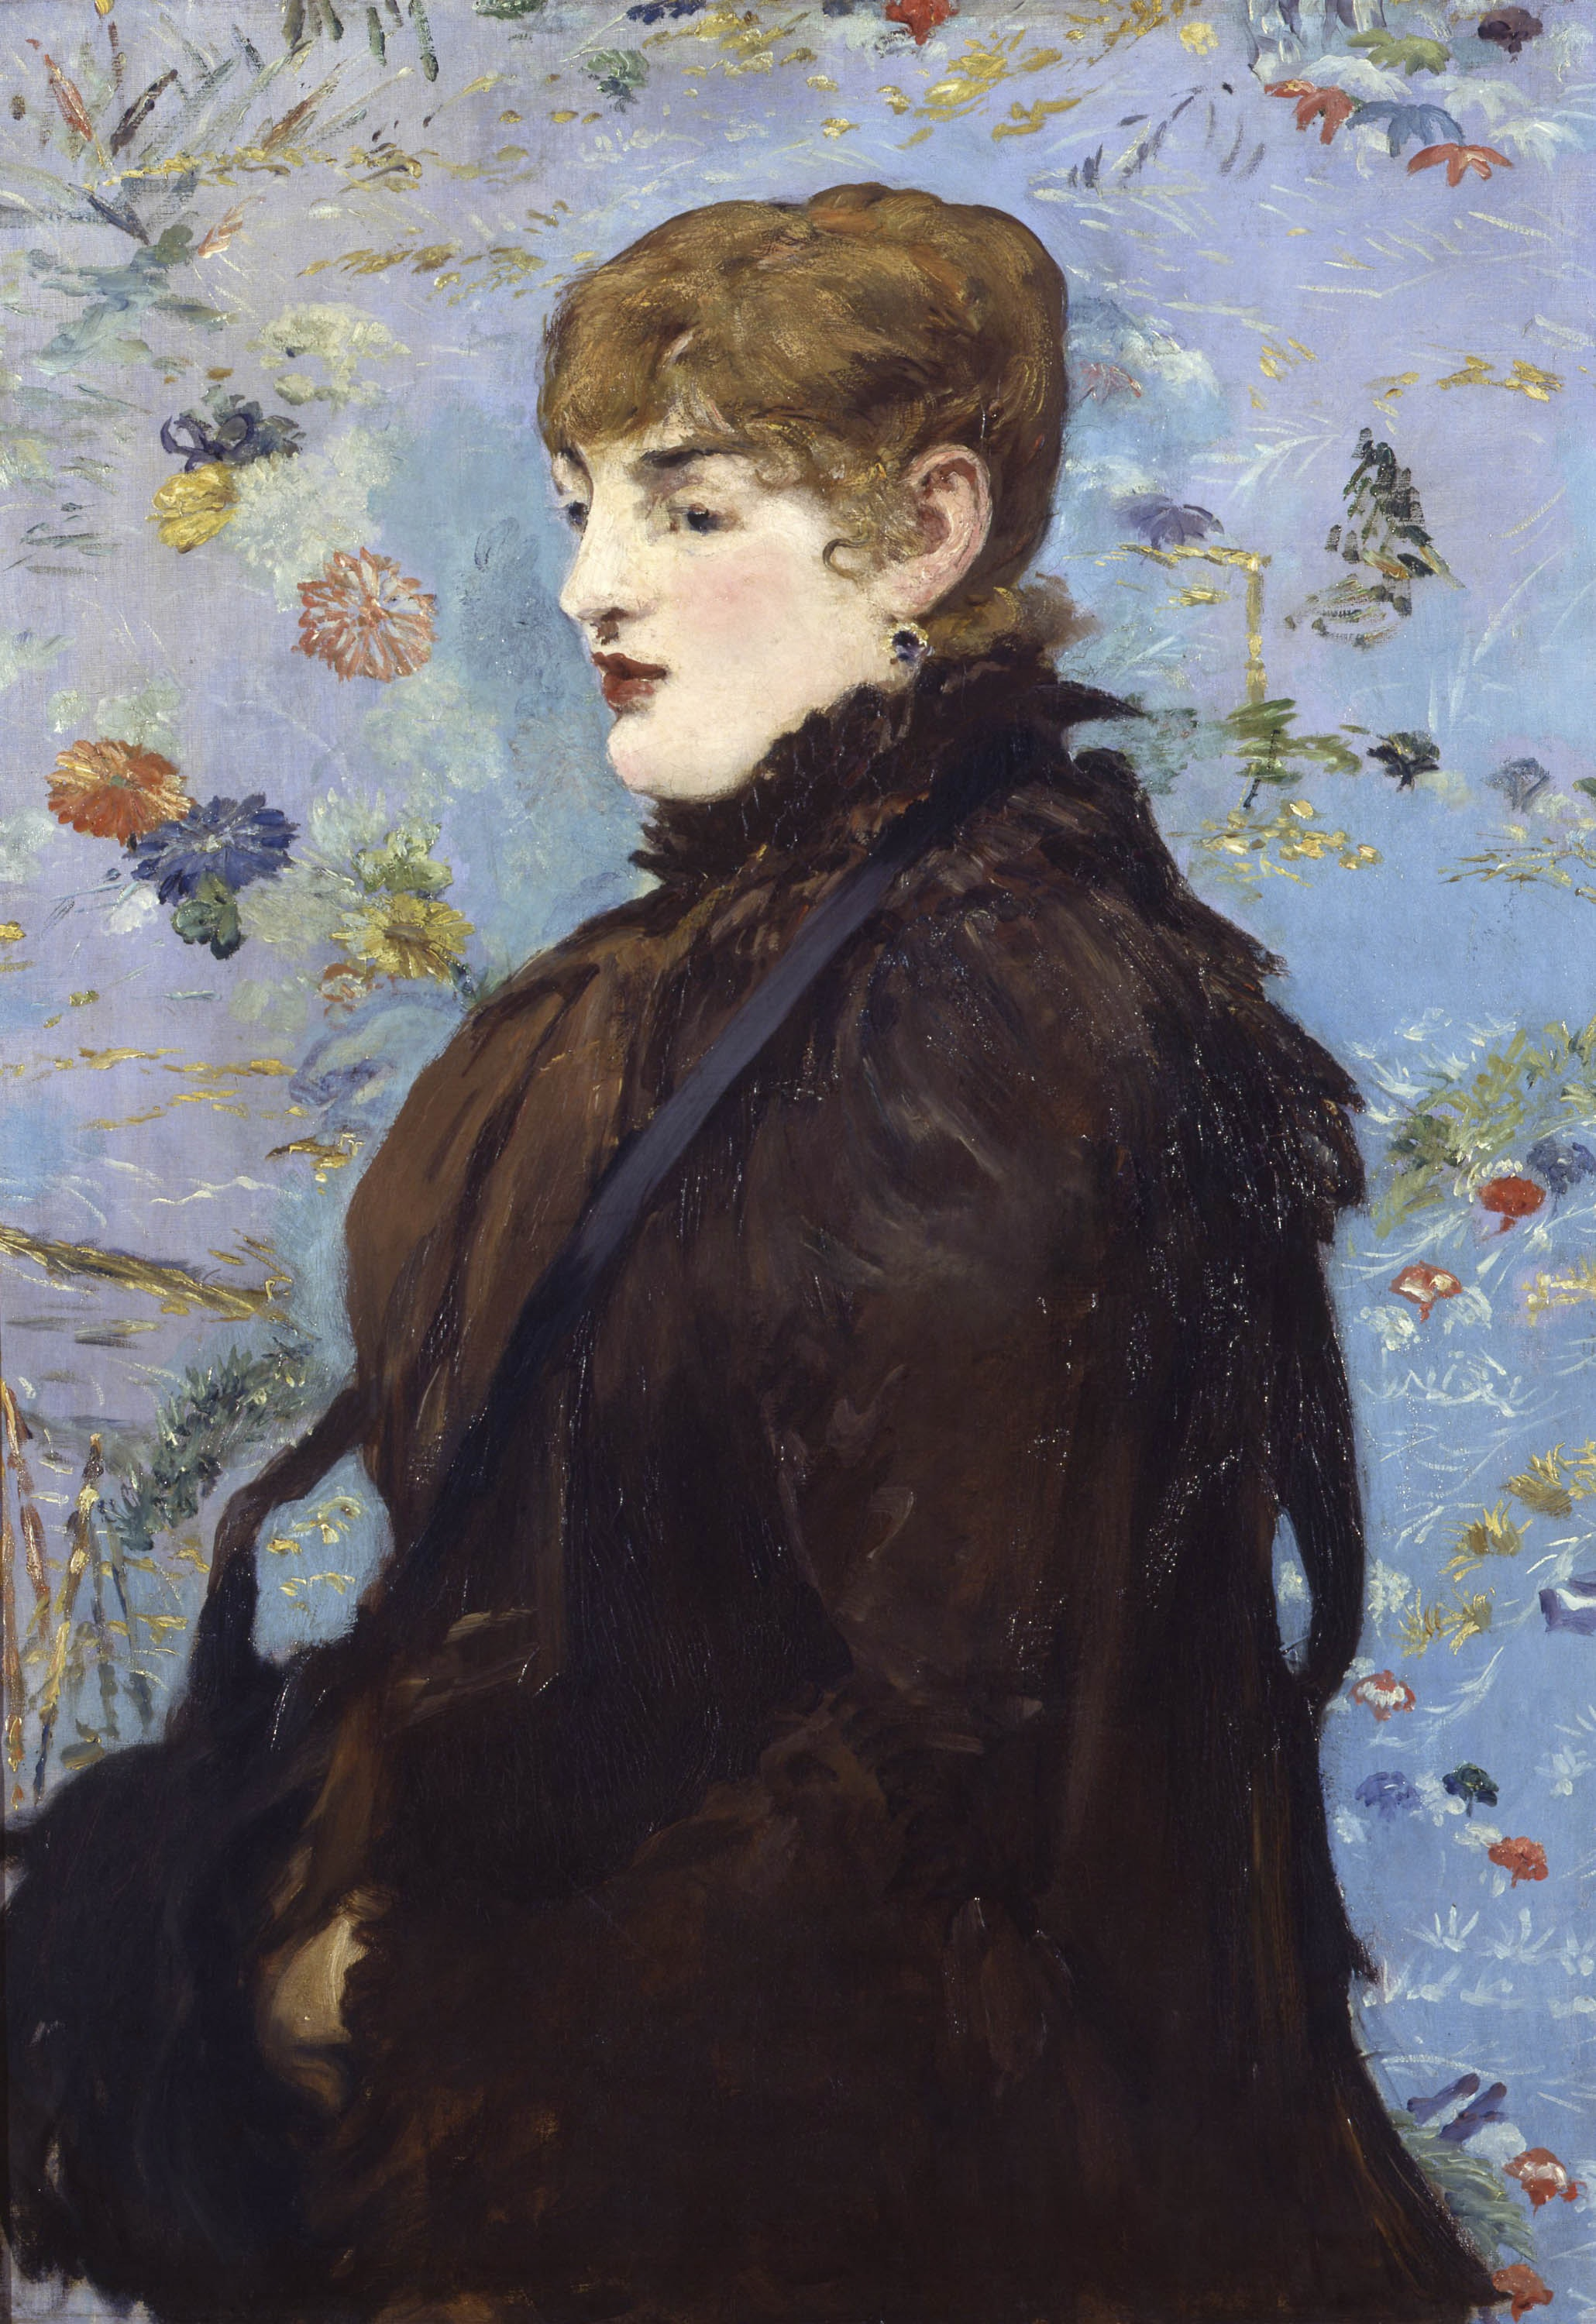 A woman in stylish black gown sits in three-quarters view against flowered wallpaper.